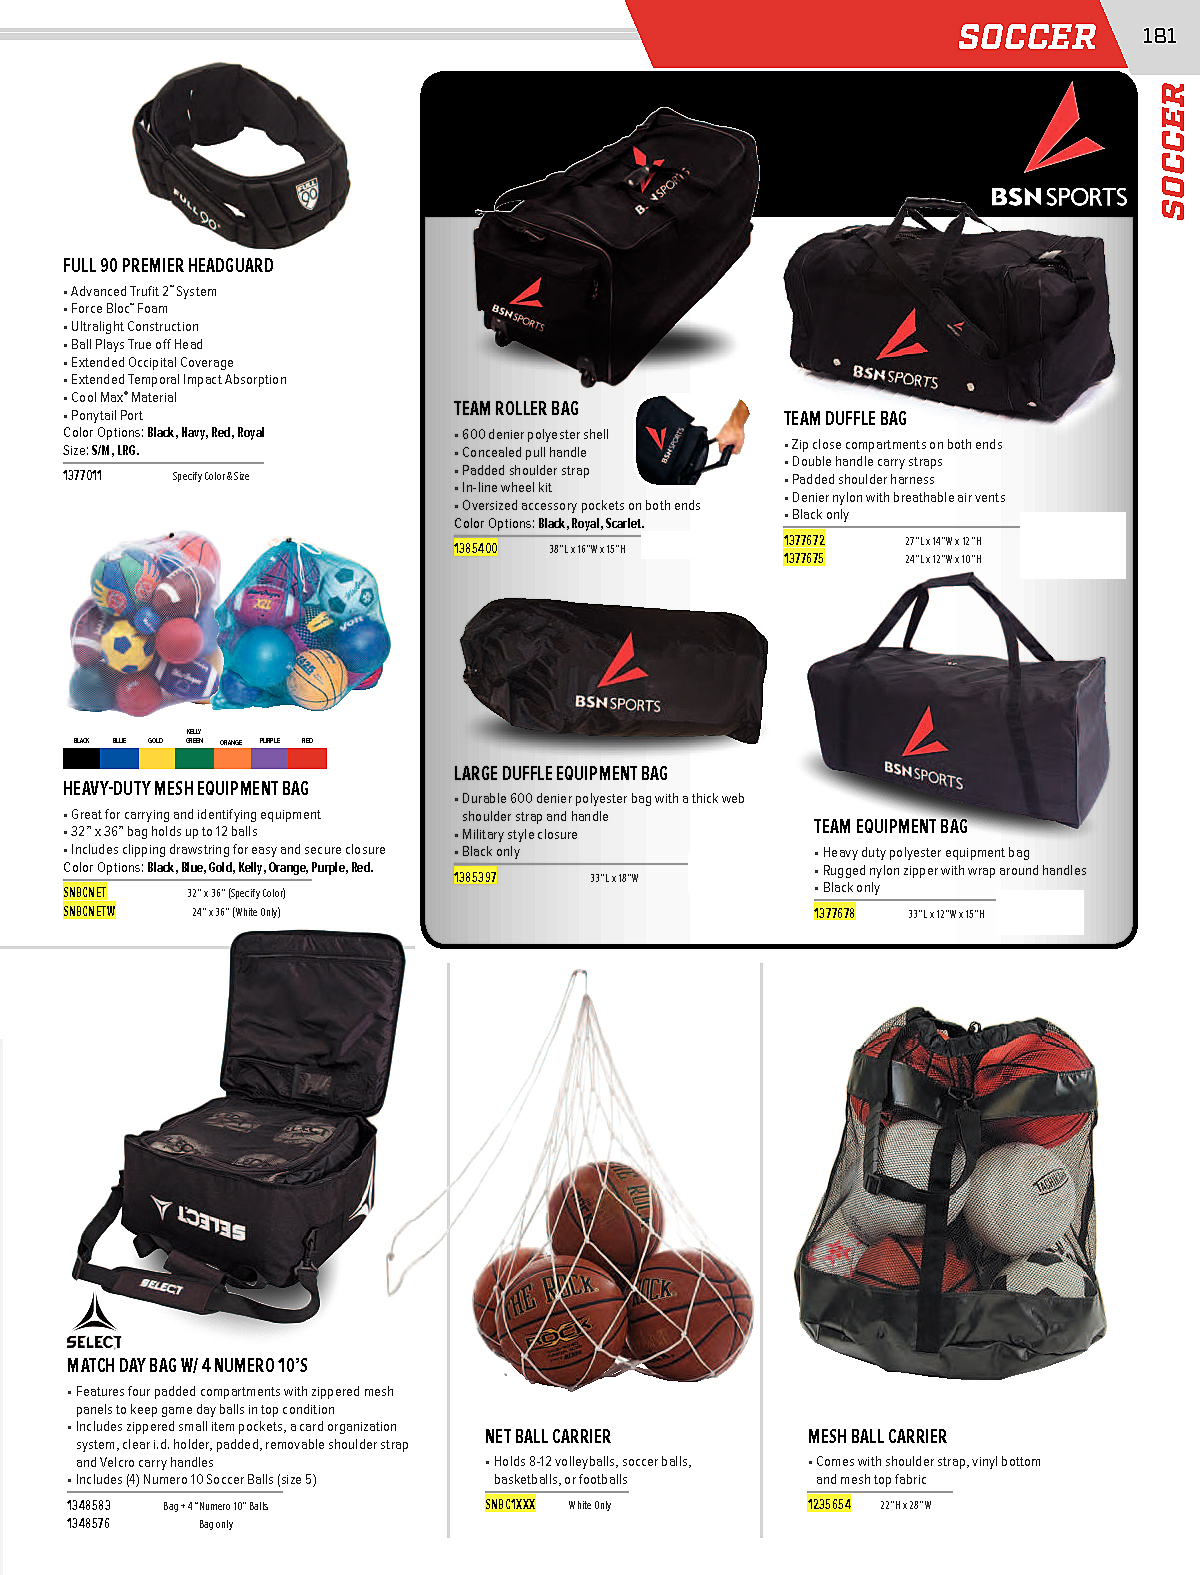 0002CatalogPage3Mar20180181.jpg